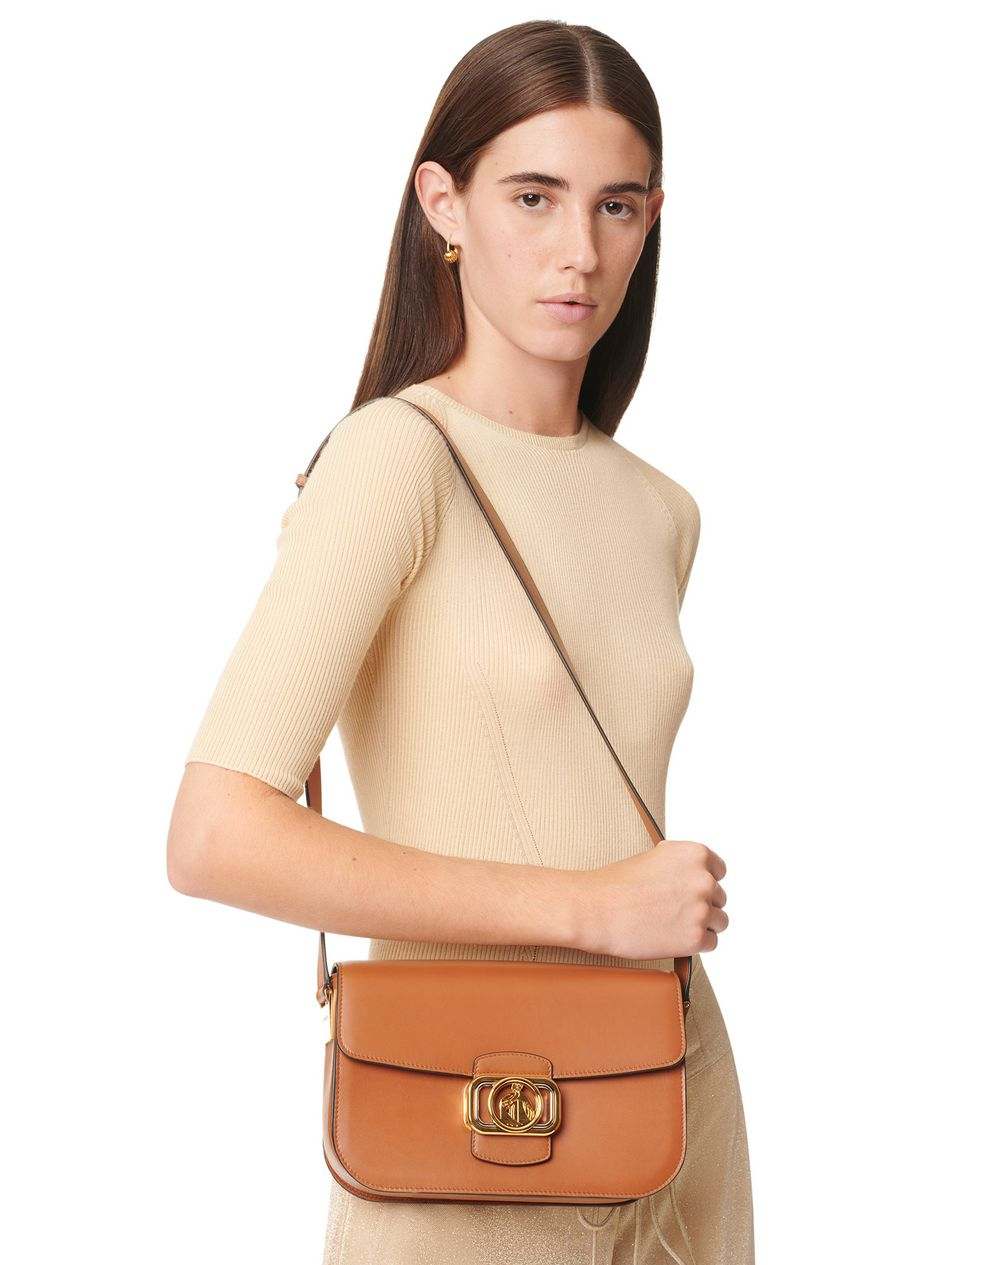 SWAN BOX BAG MM IN CALFSKIN LEATHER - Lanvin